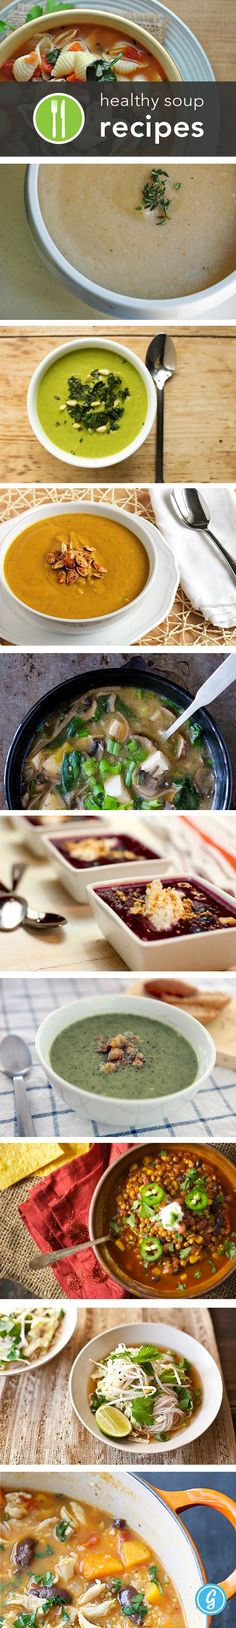 Healthy Soup Recipes!